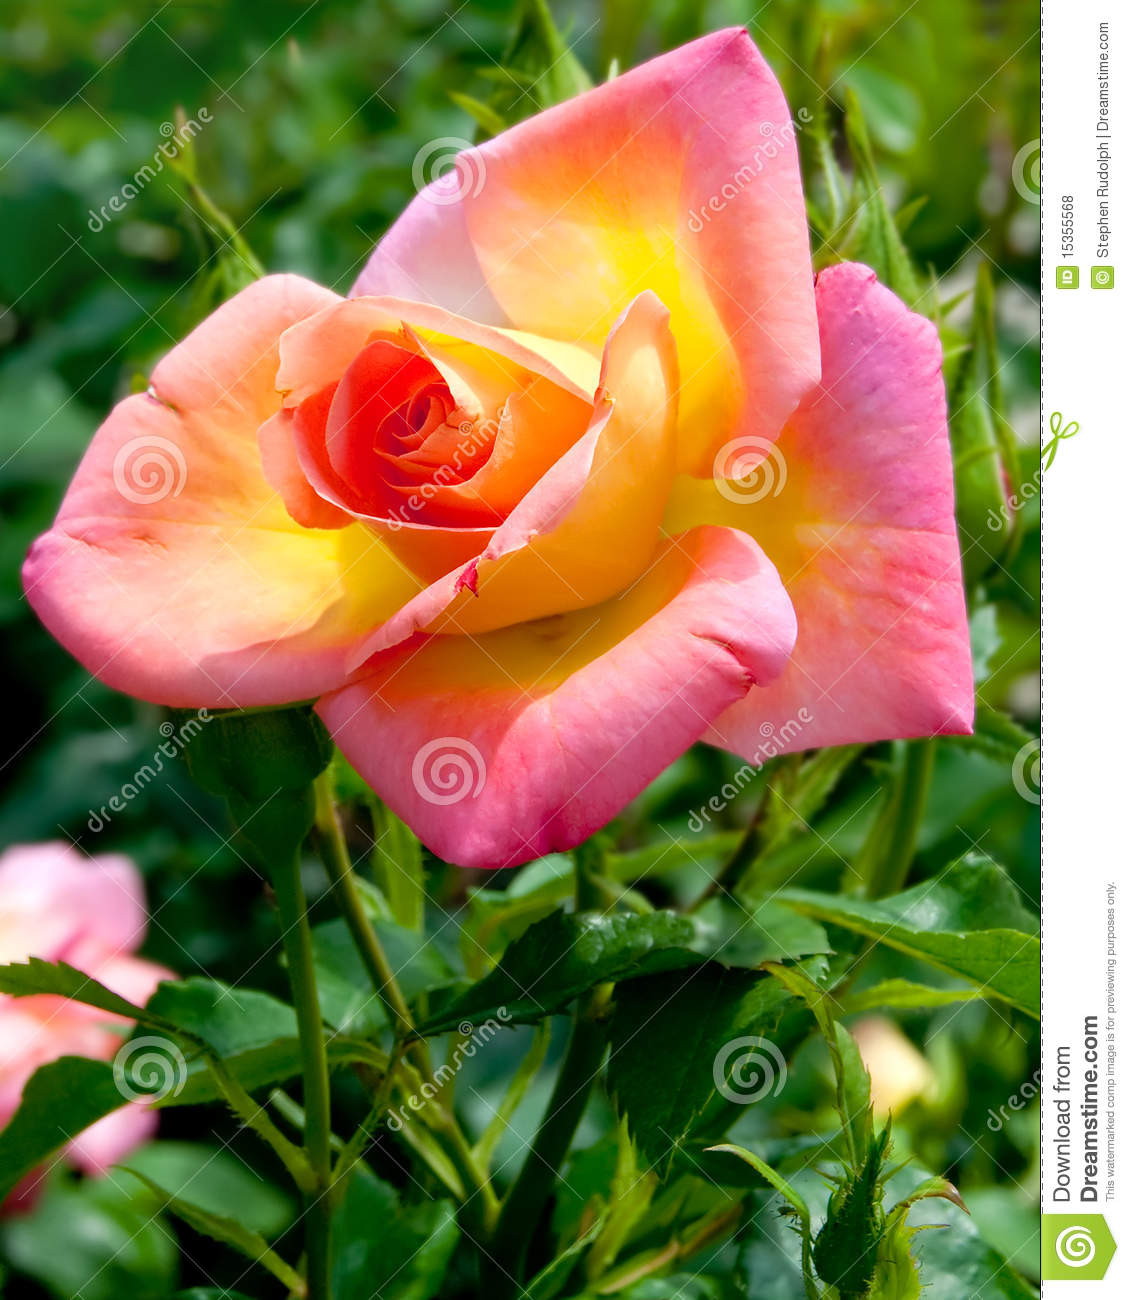 Fiori Gialli Rose.Pink And Yellow Rose Blossom Stock Photo Image Of Blossoming